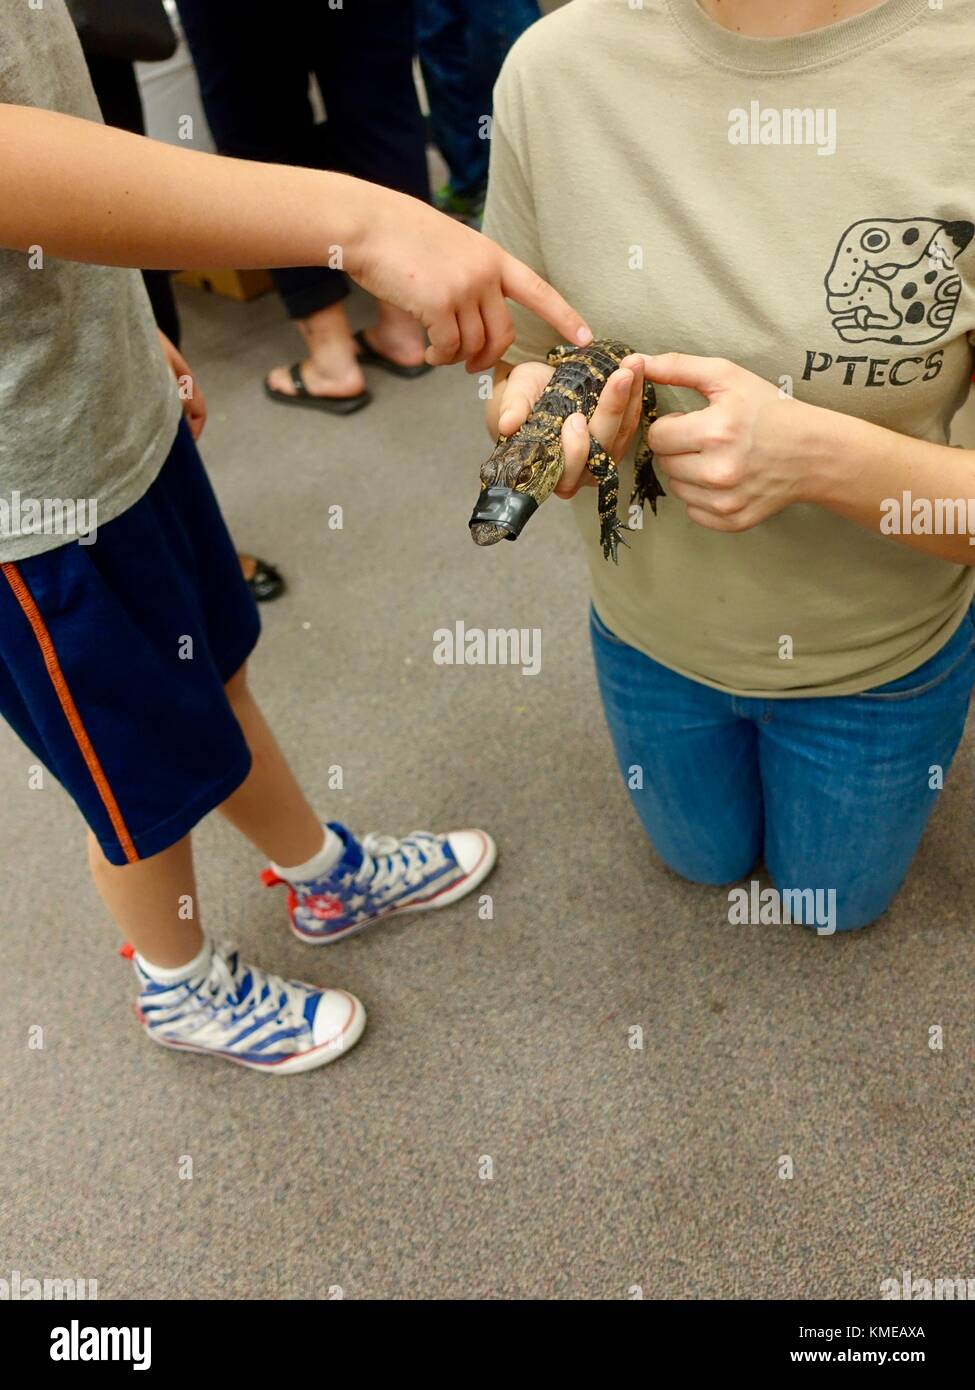 USA, Florida. Boy tentatively touching baby alligator held by university student at a science open house for elementary - Stock Image